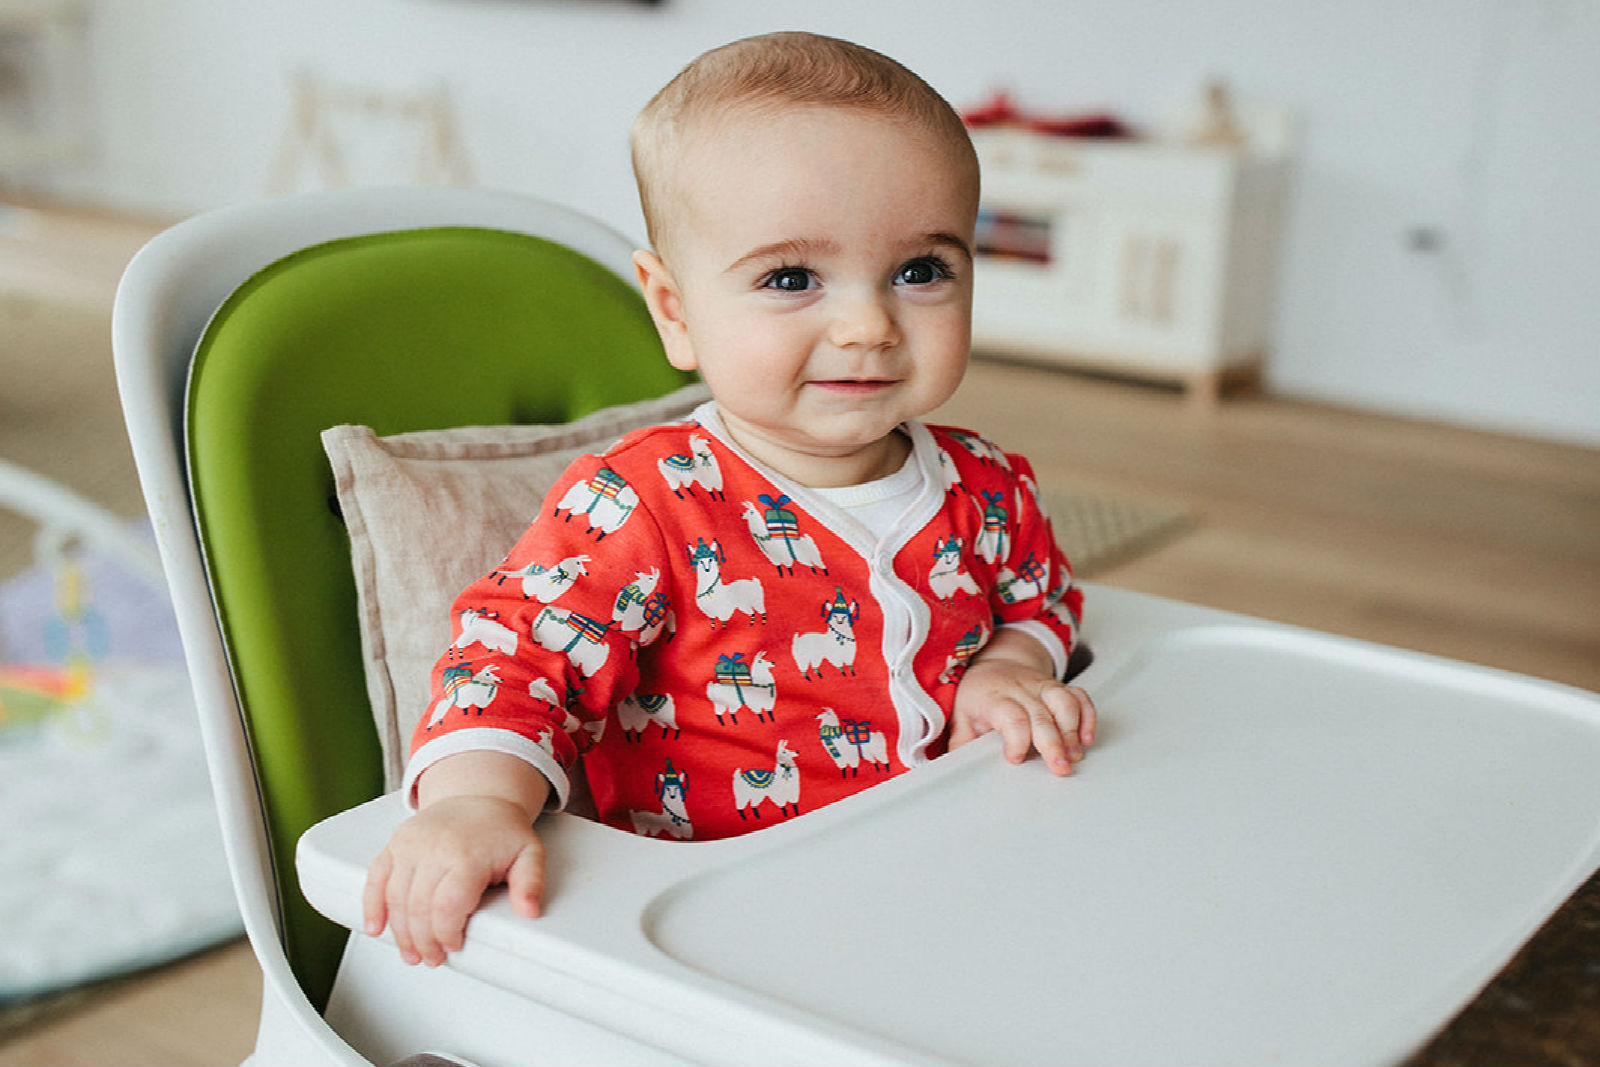 A baby in a high chair.